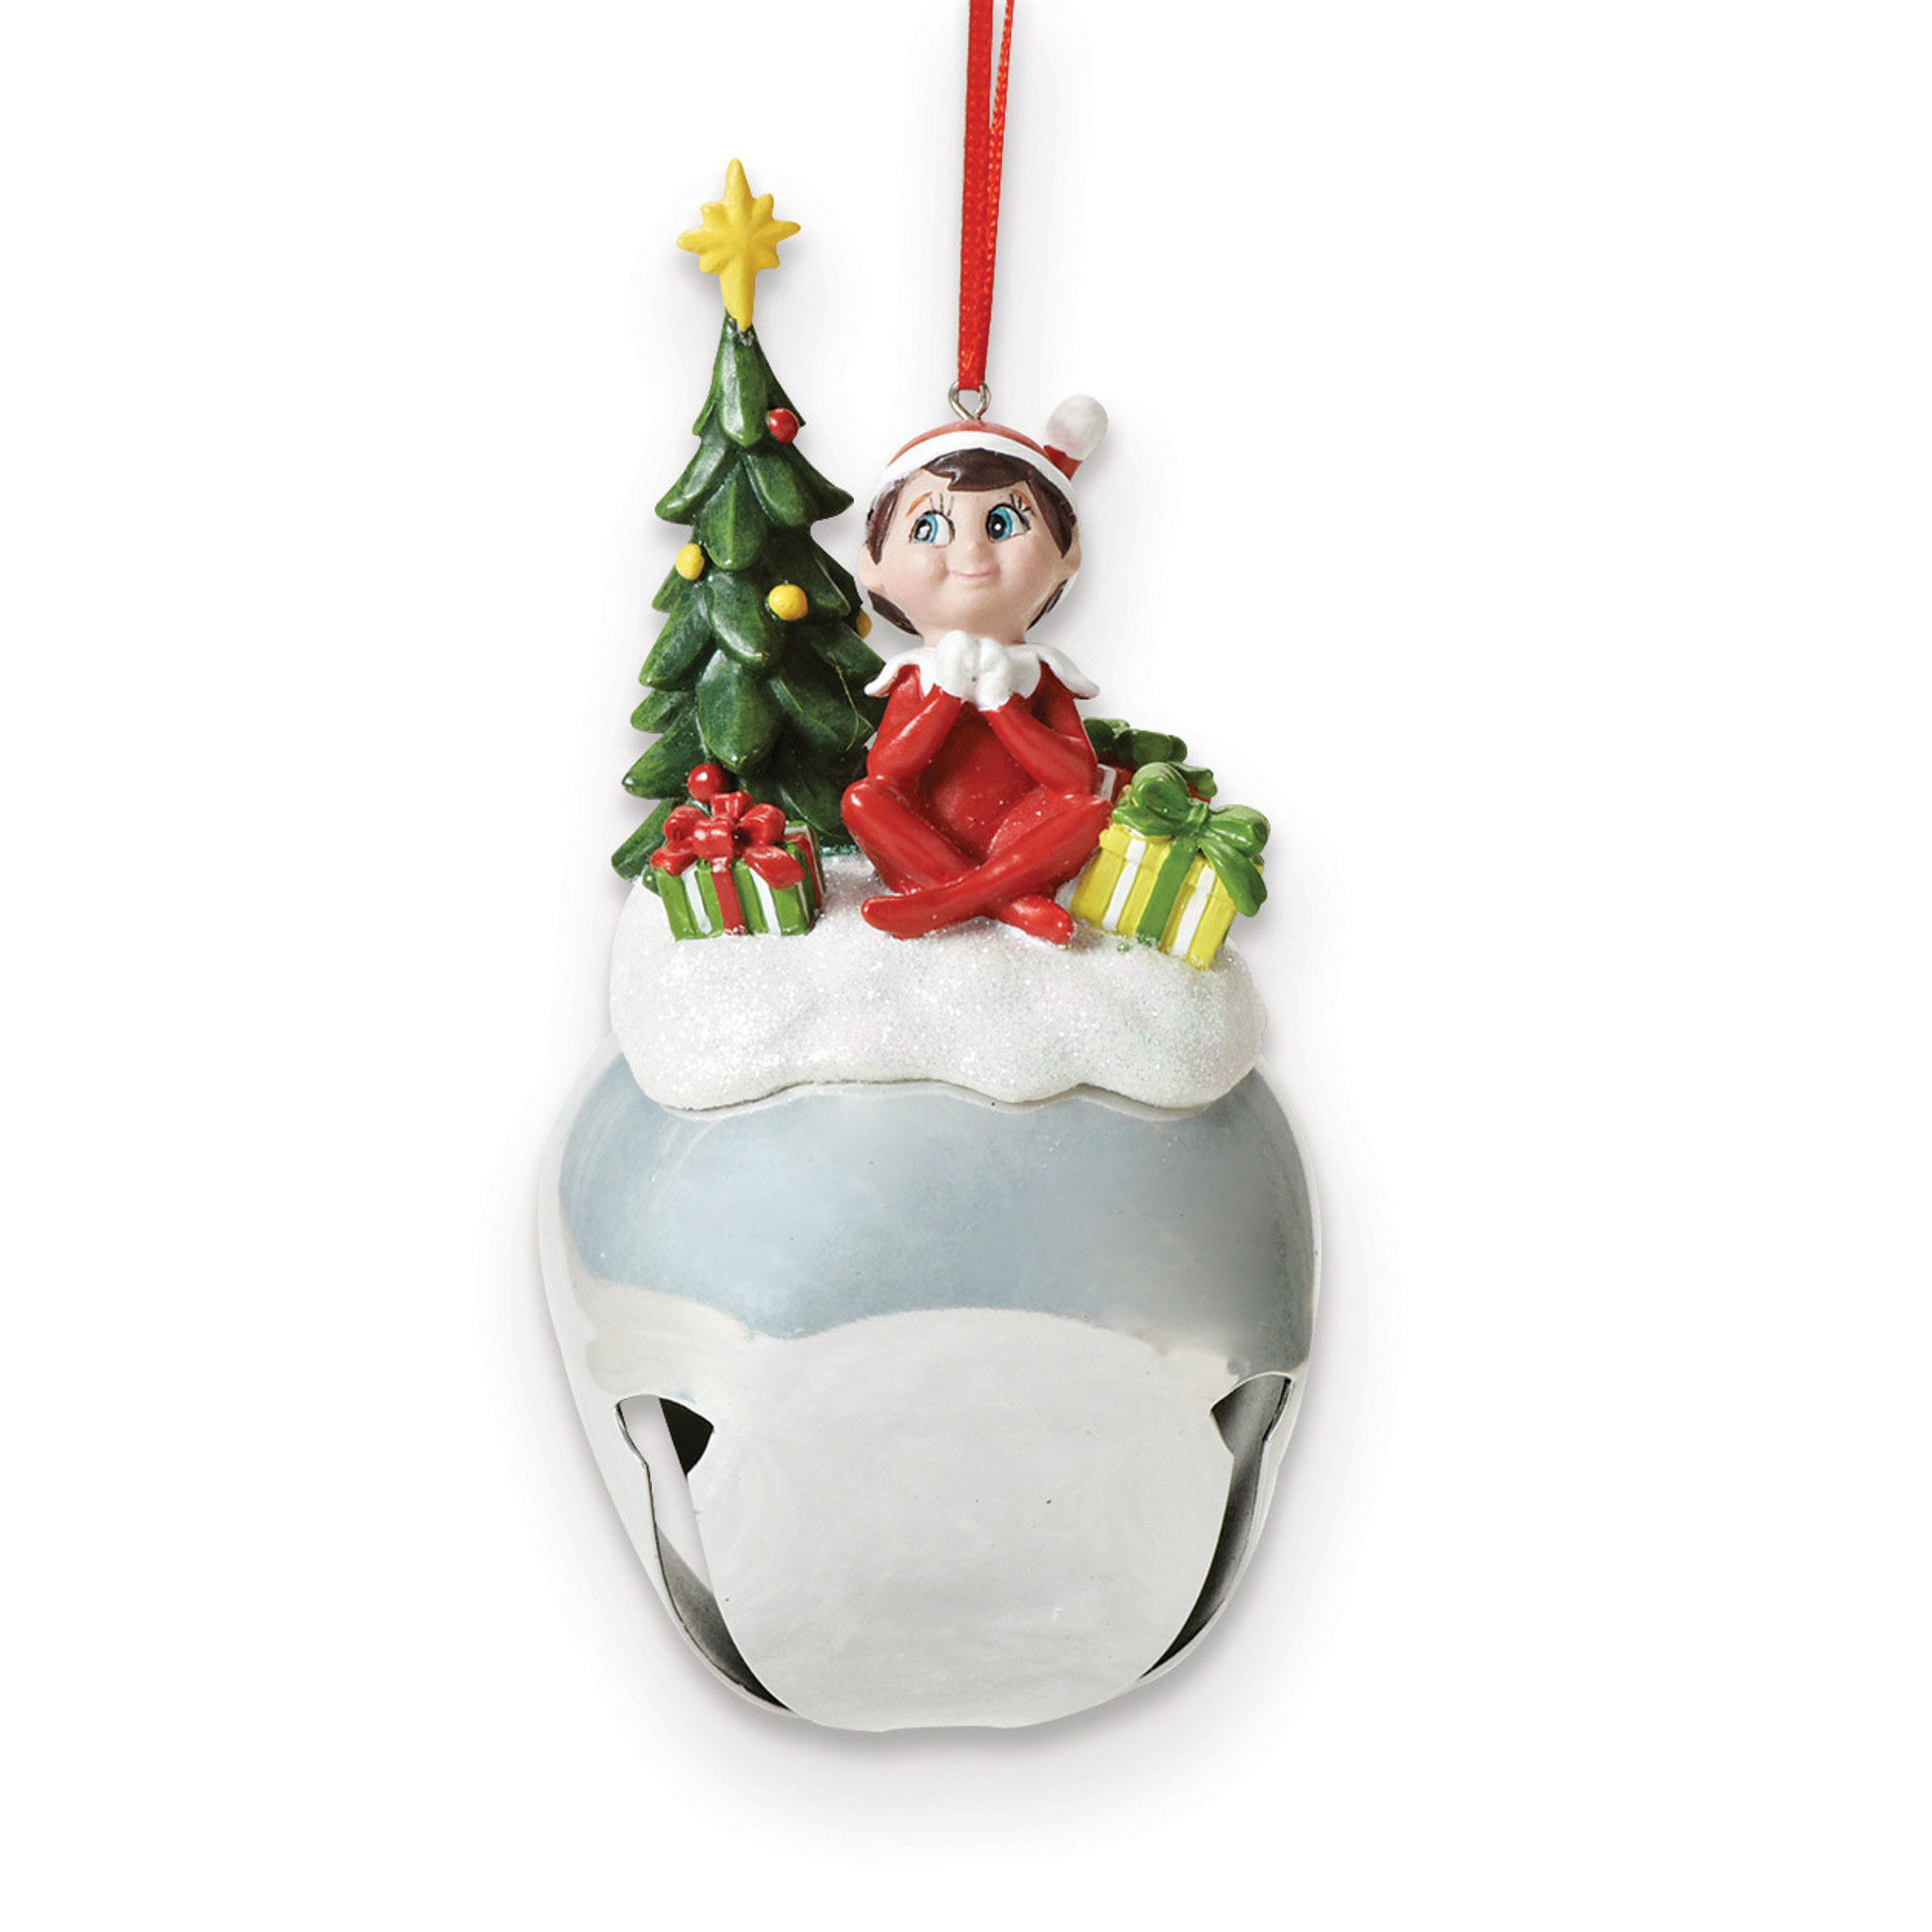 Jingle buddies elf with tree ornament gm homebello